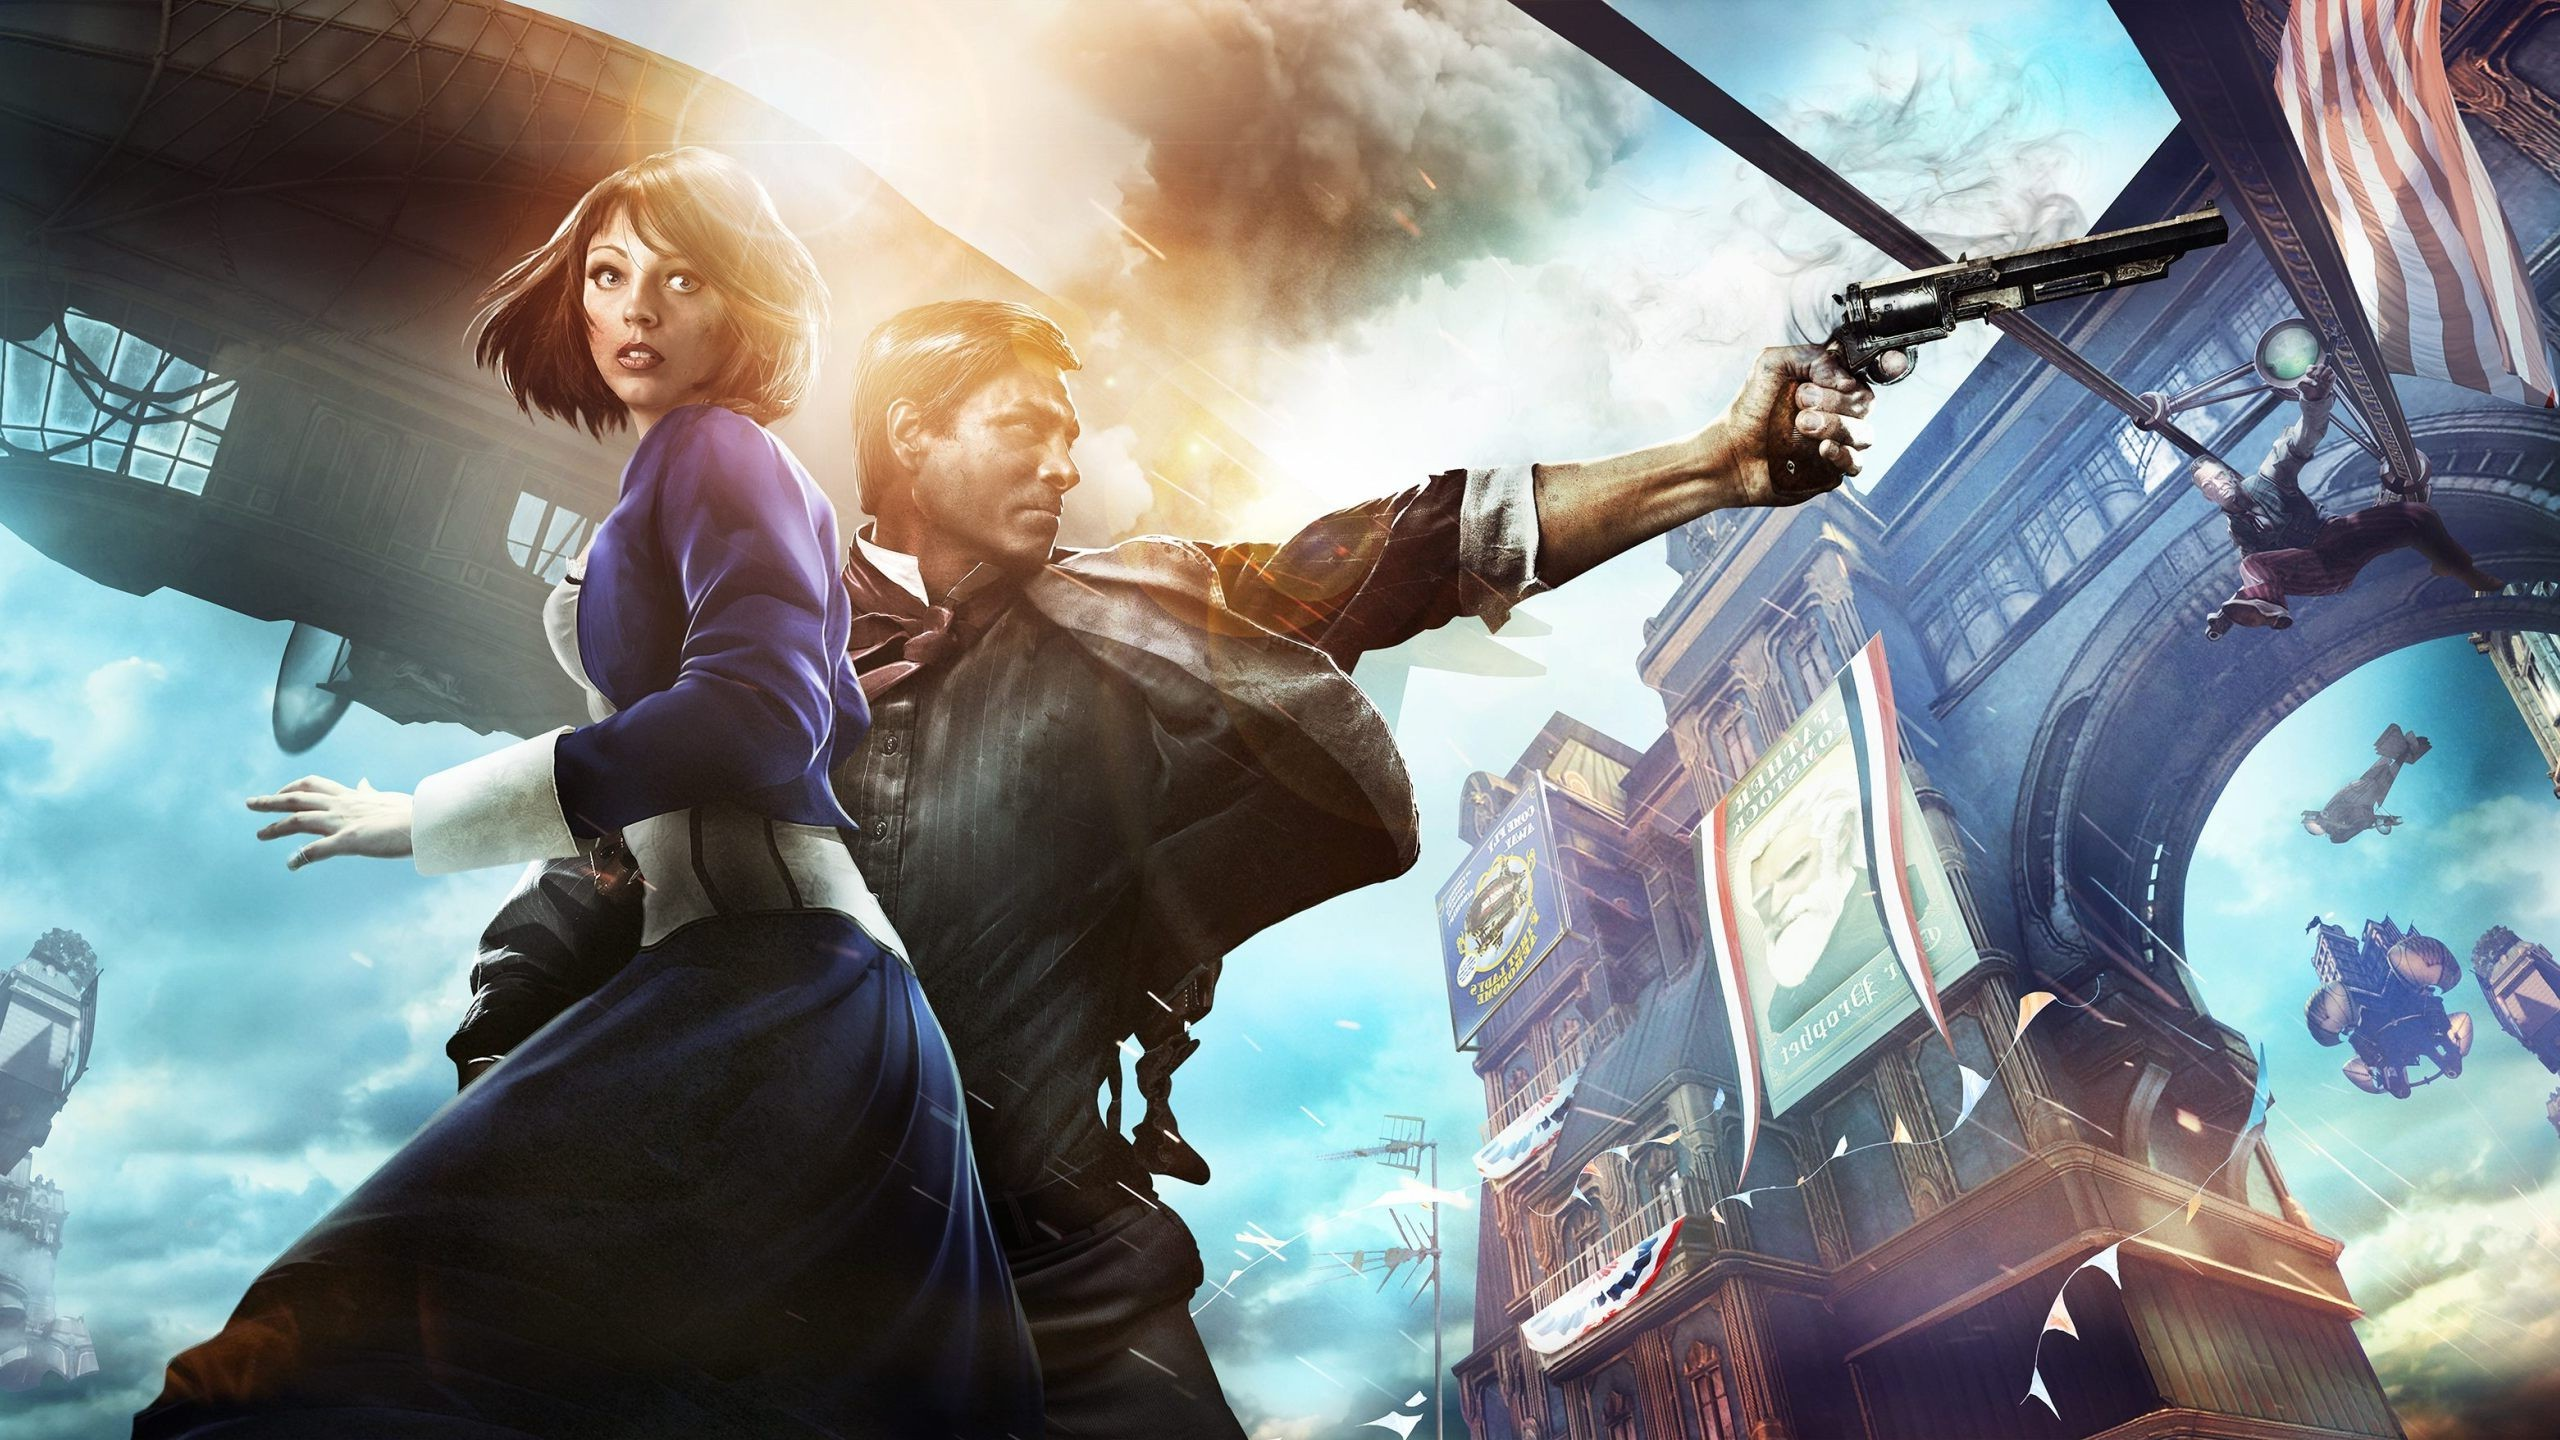 Bioshock Infinite Falling Wallpaper Hd Bioshock Bioshock Infinite Video Games Wallpapers Hd